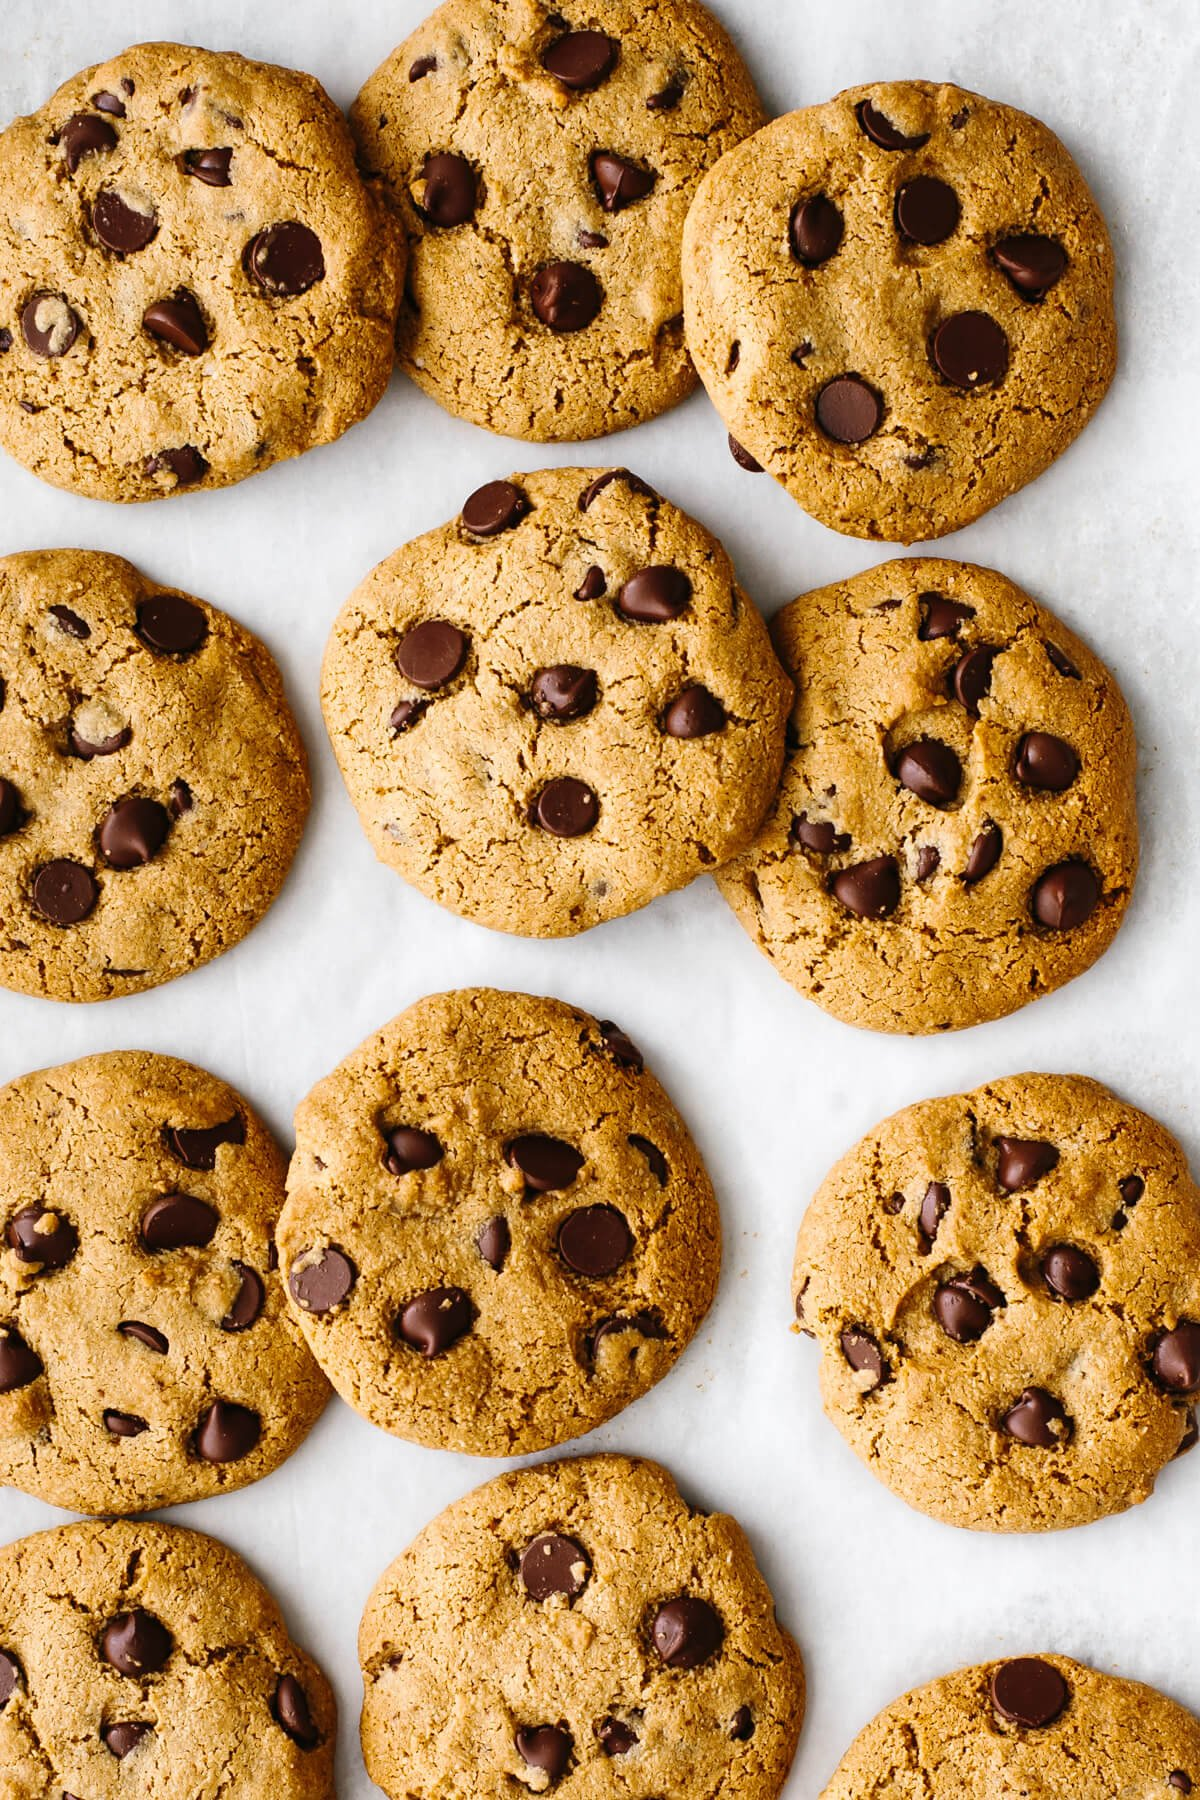 Gluten-free chocolate chip cookies spread out on a baking sheet.